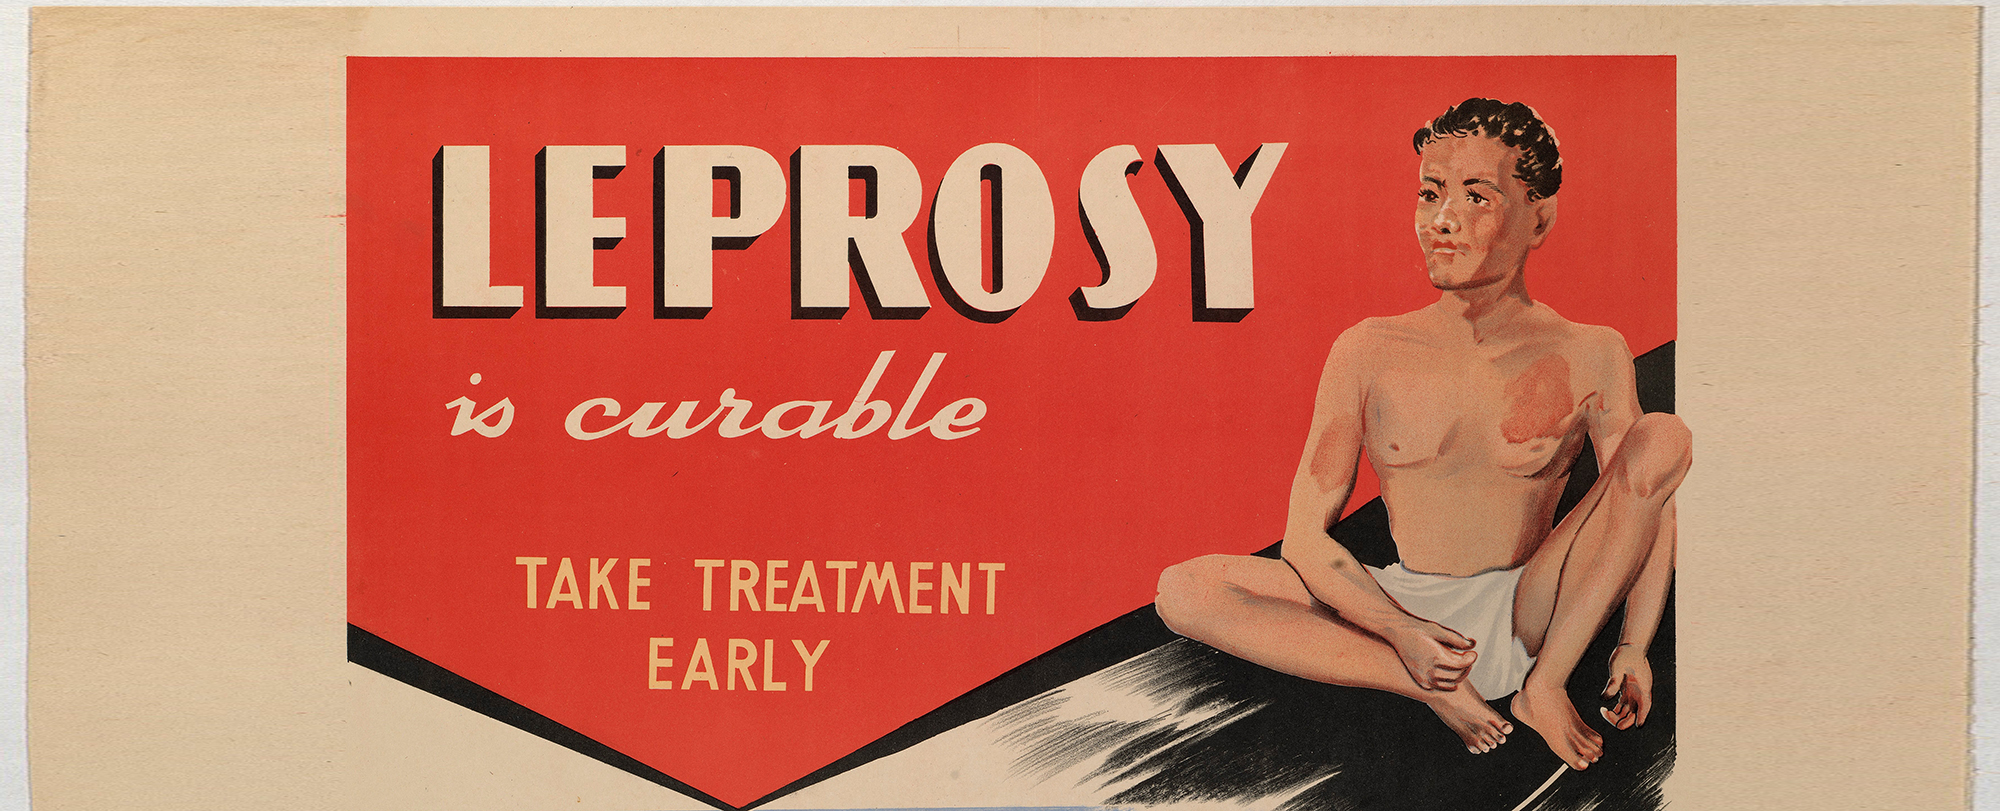 World Leprosy Day. Image courtest of Wellcome Collection.